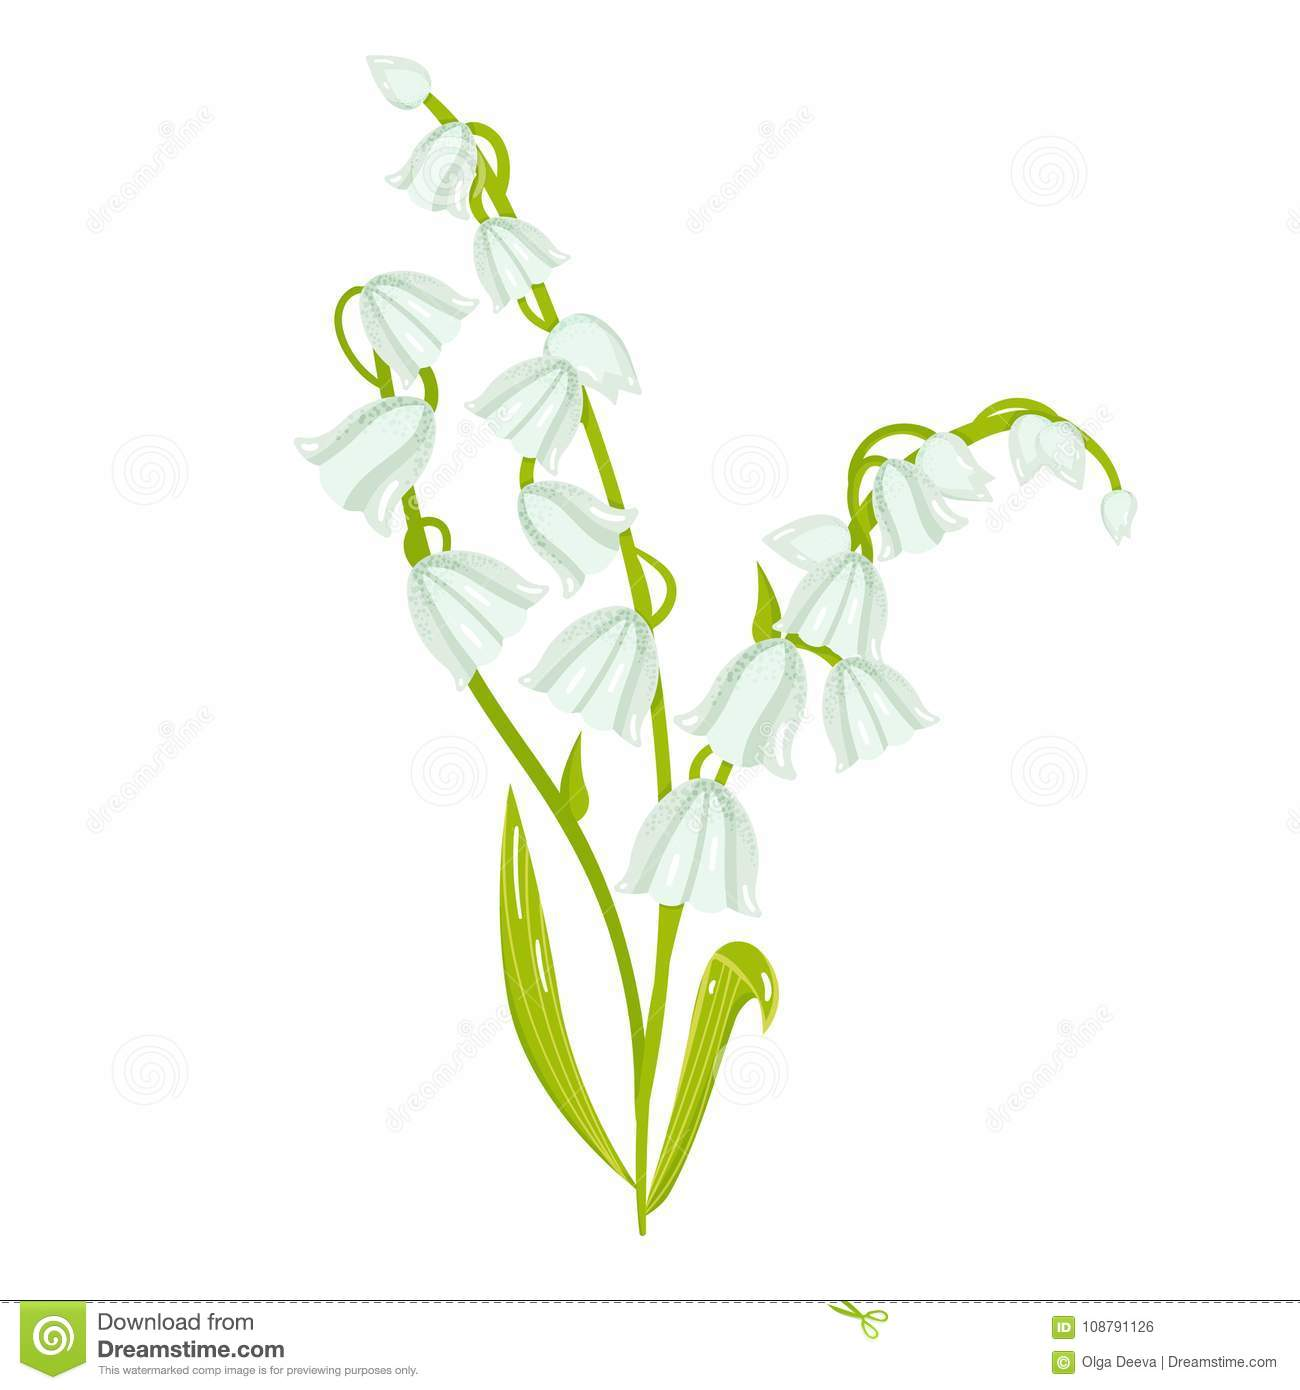 Cartoon lily of the valley spring flower illustration stock vector cartoon lily of the valley spring flower illustration stock vector illustration of element pink 108791126 izmirmasajfo